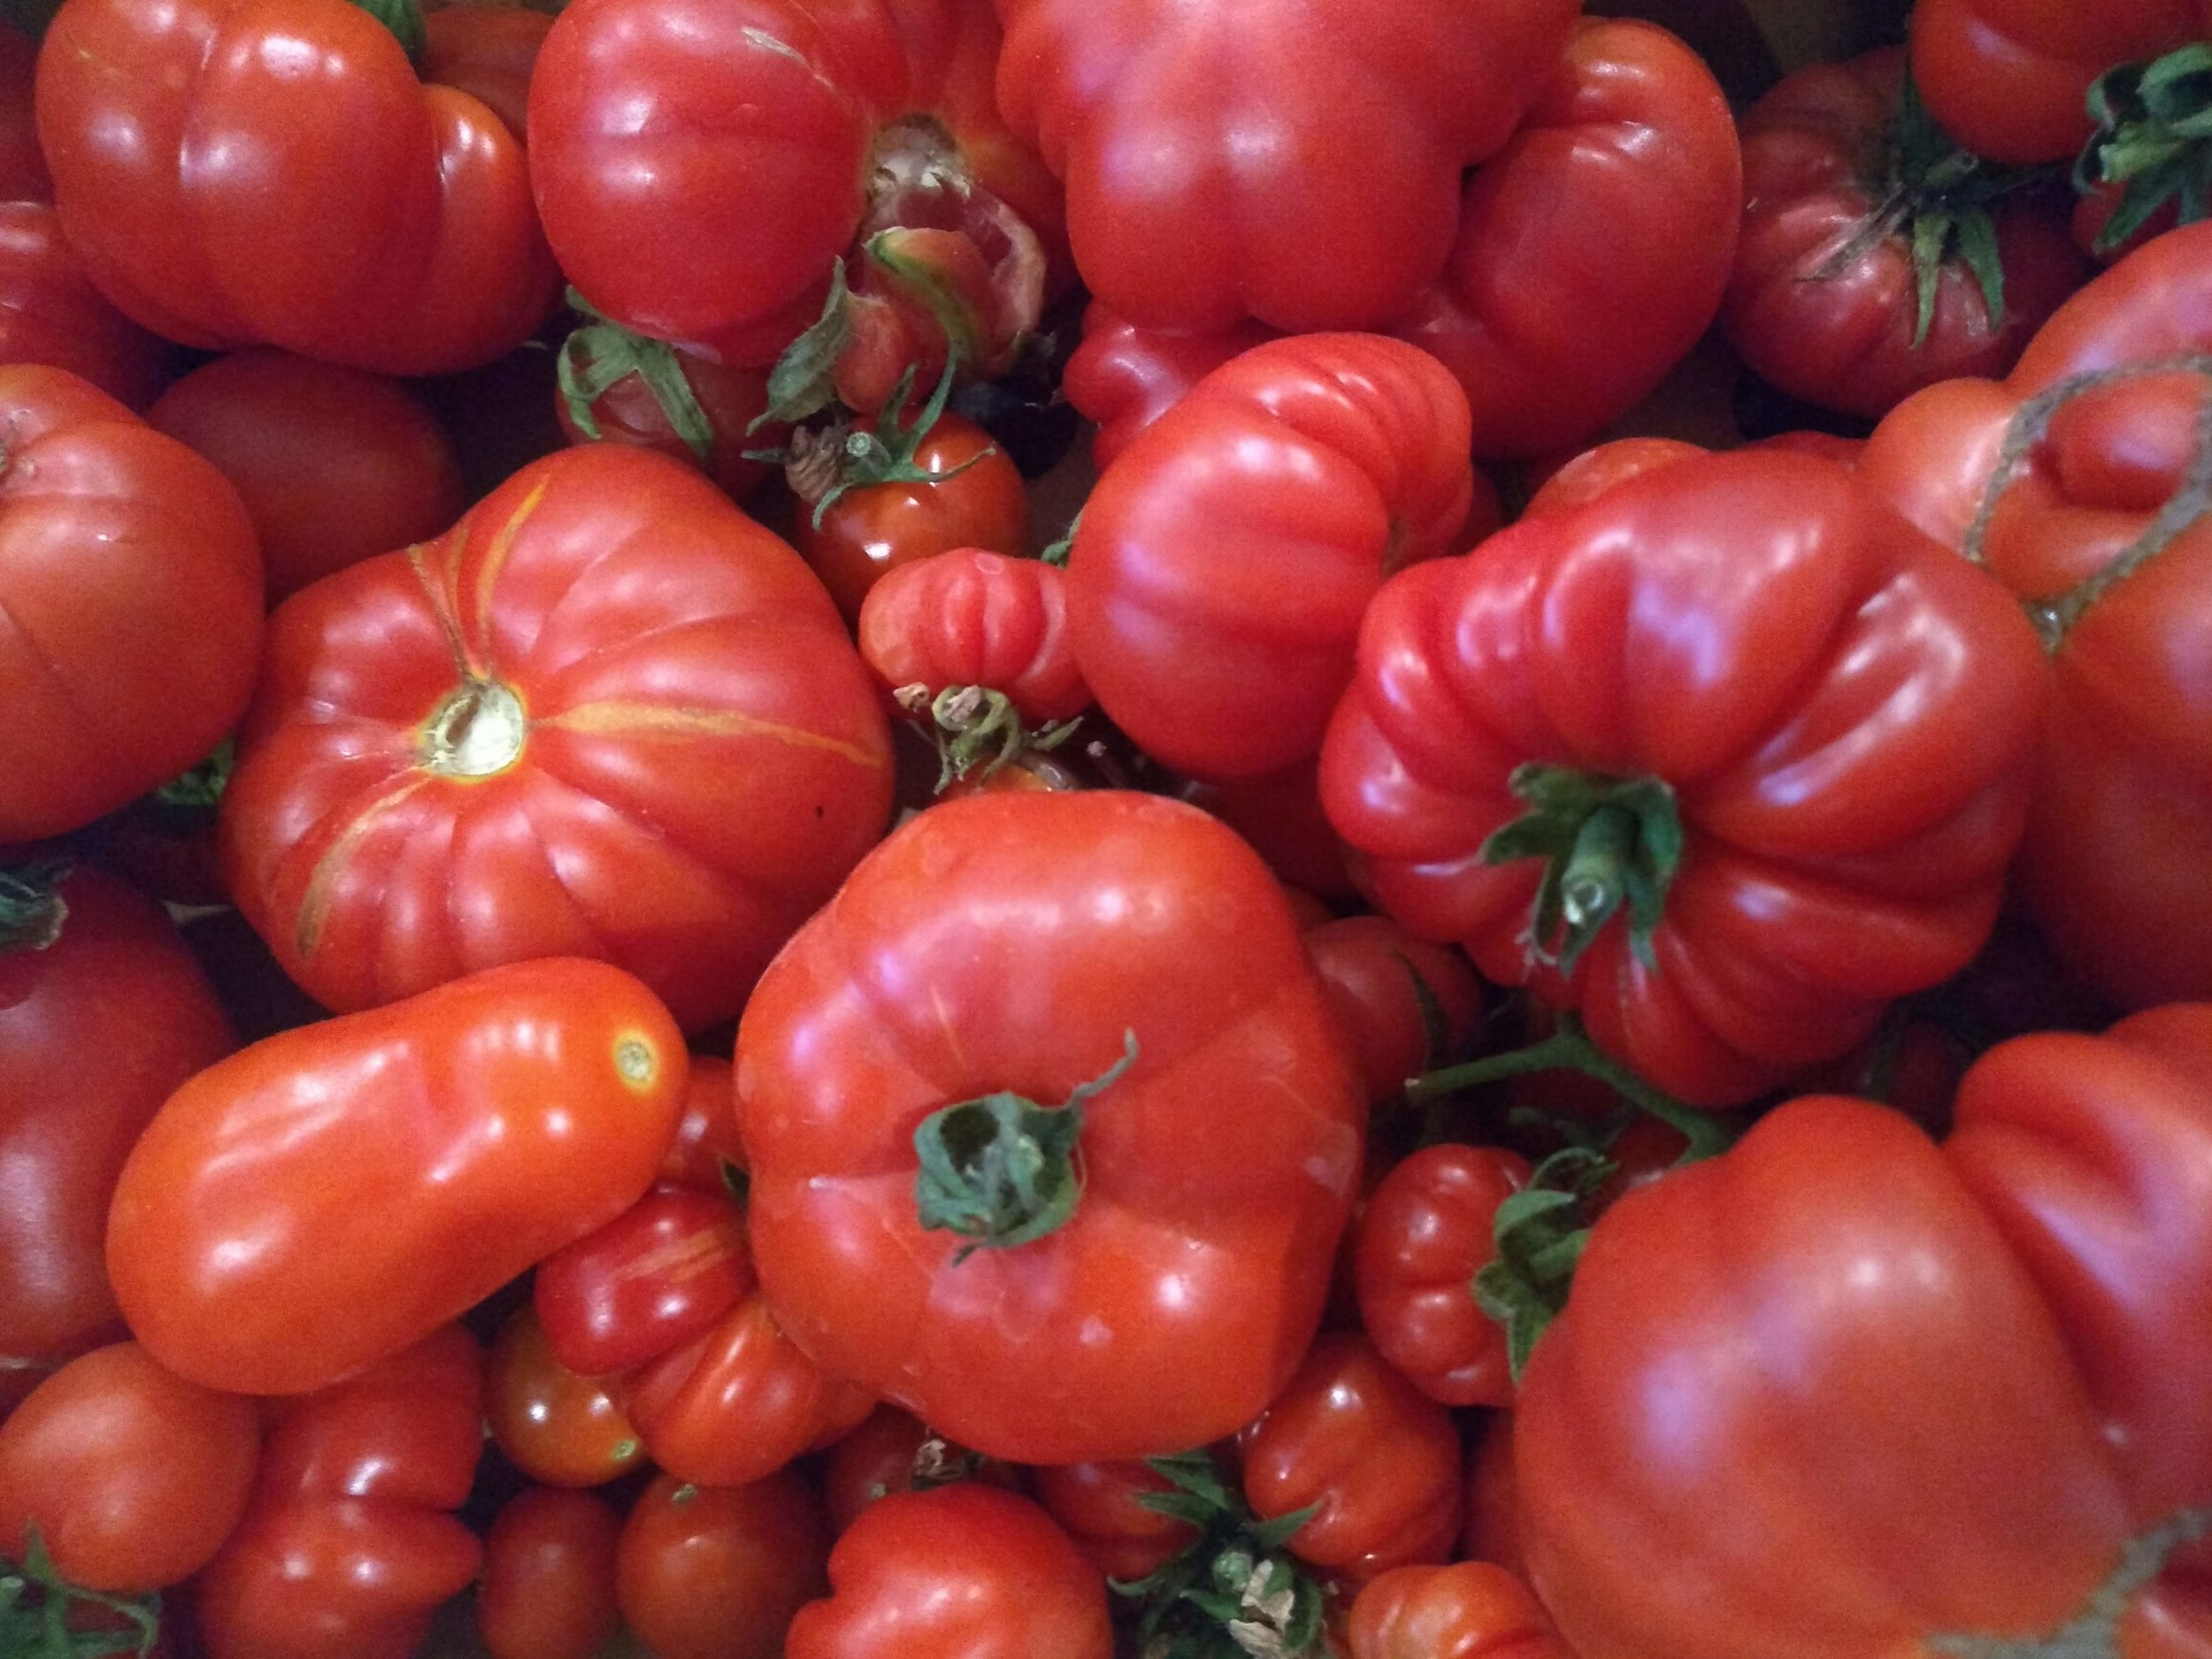 Delicious fresh homegrown tomatoes - smallholding produce